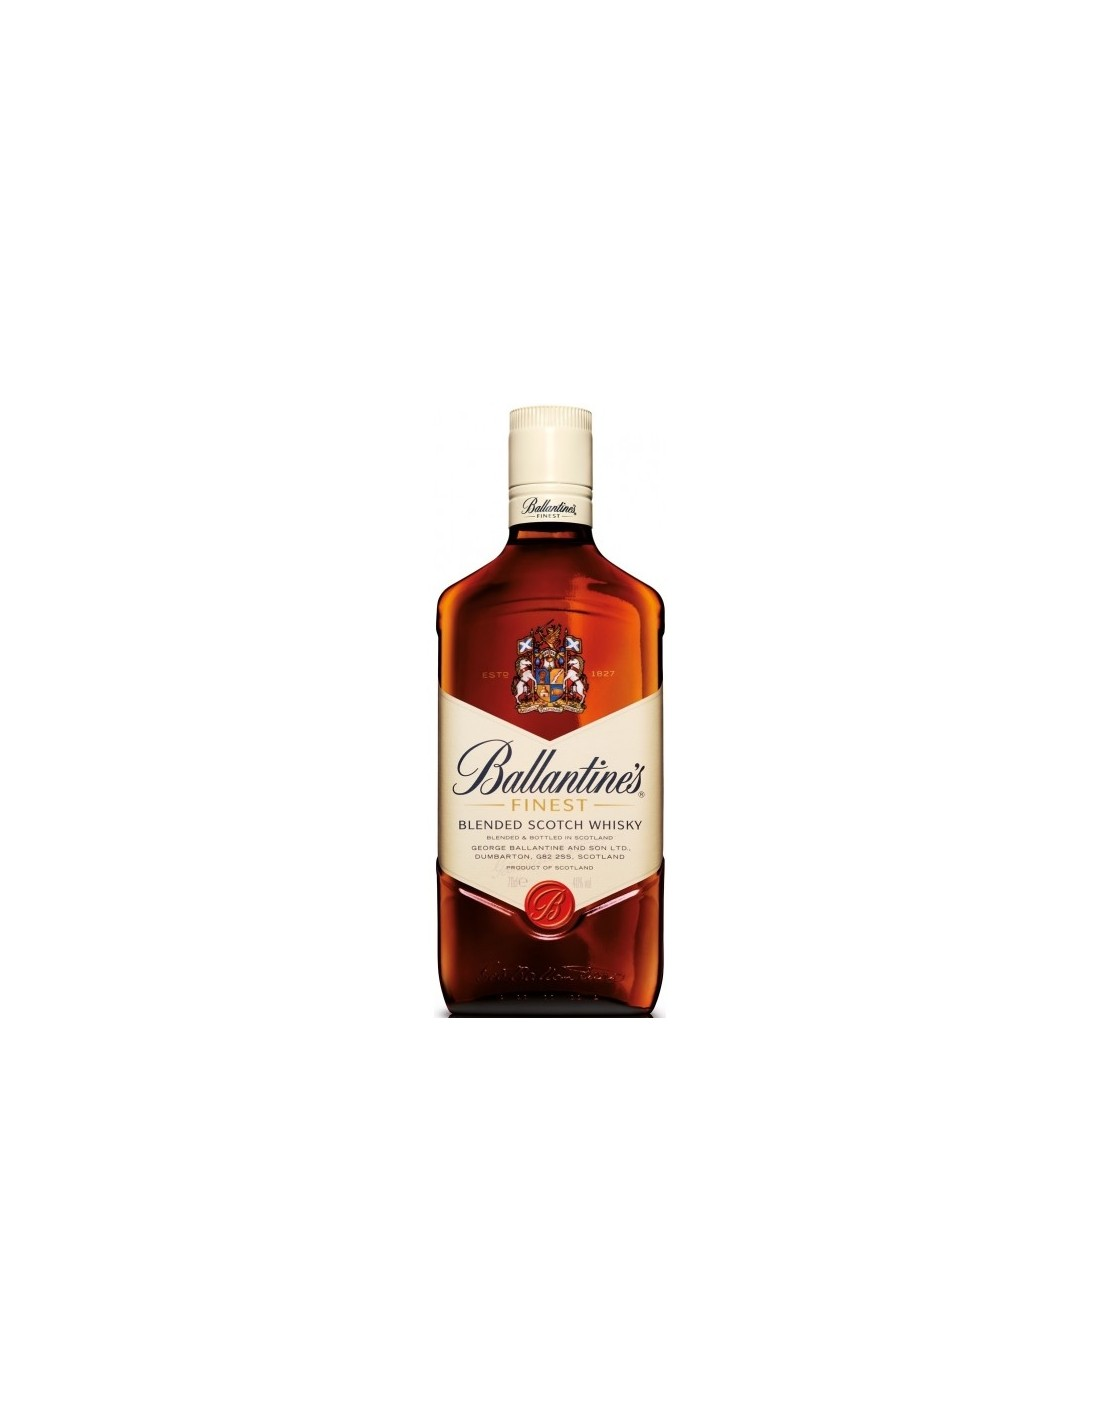 Blended Whisky Ballantine's Finest, 40% alc., 0.7L, Scotia